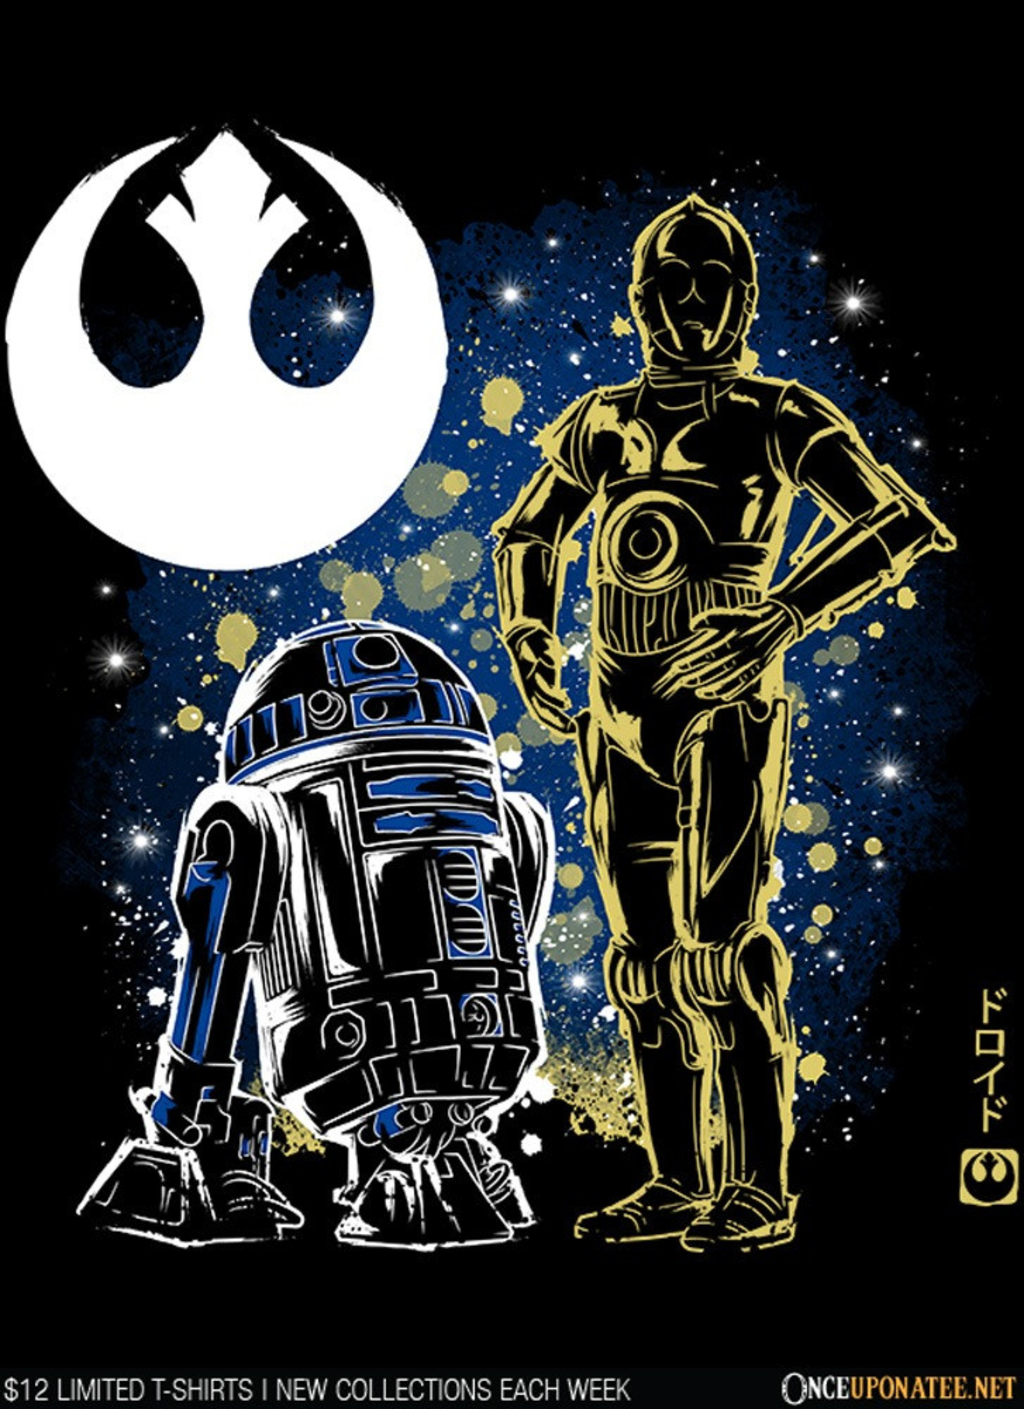 Once Upon a Tee: The Droids